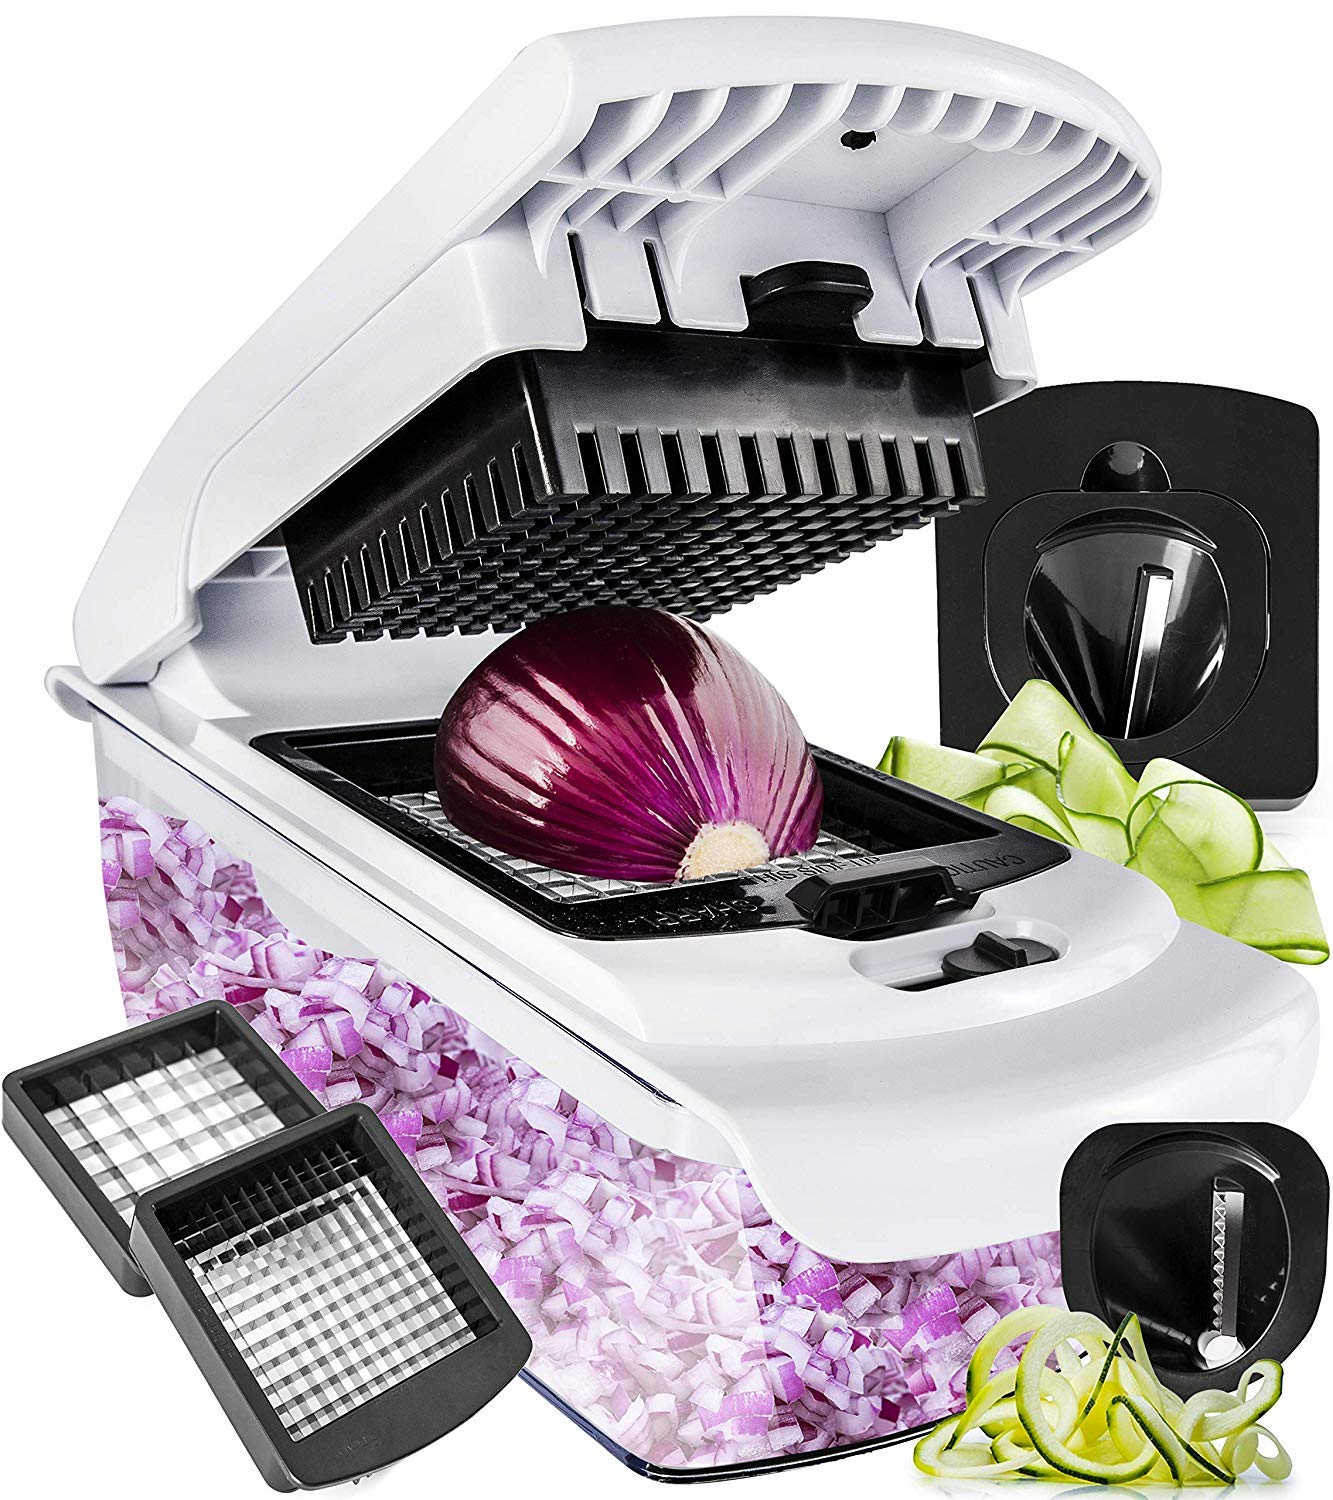 kitchen accessories - Veggie Spiralizer Slicer Onion Vegetable Pro-Food Choppers and Dicers